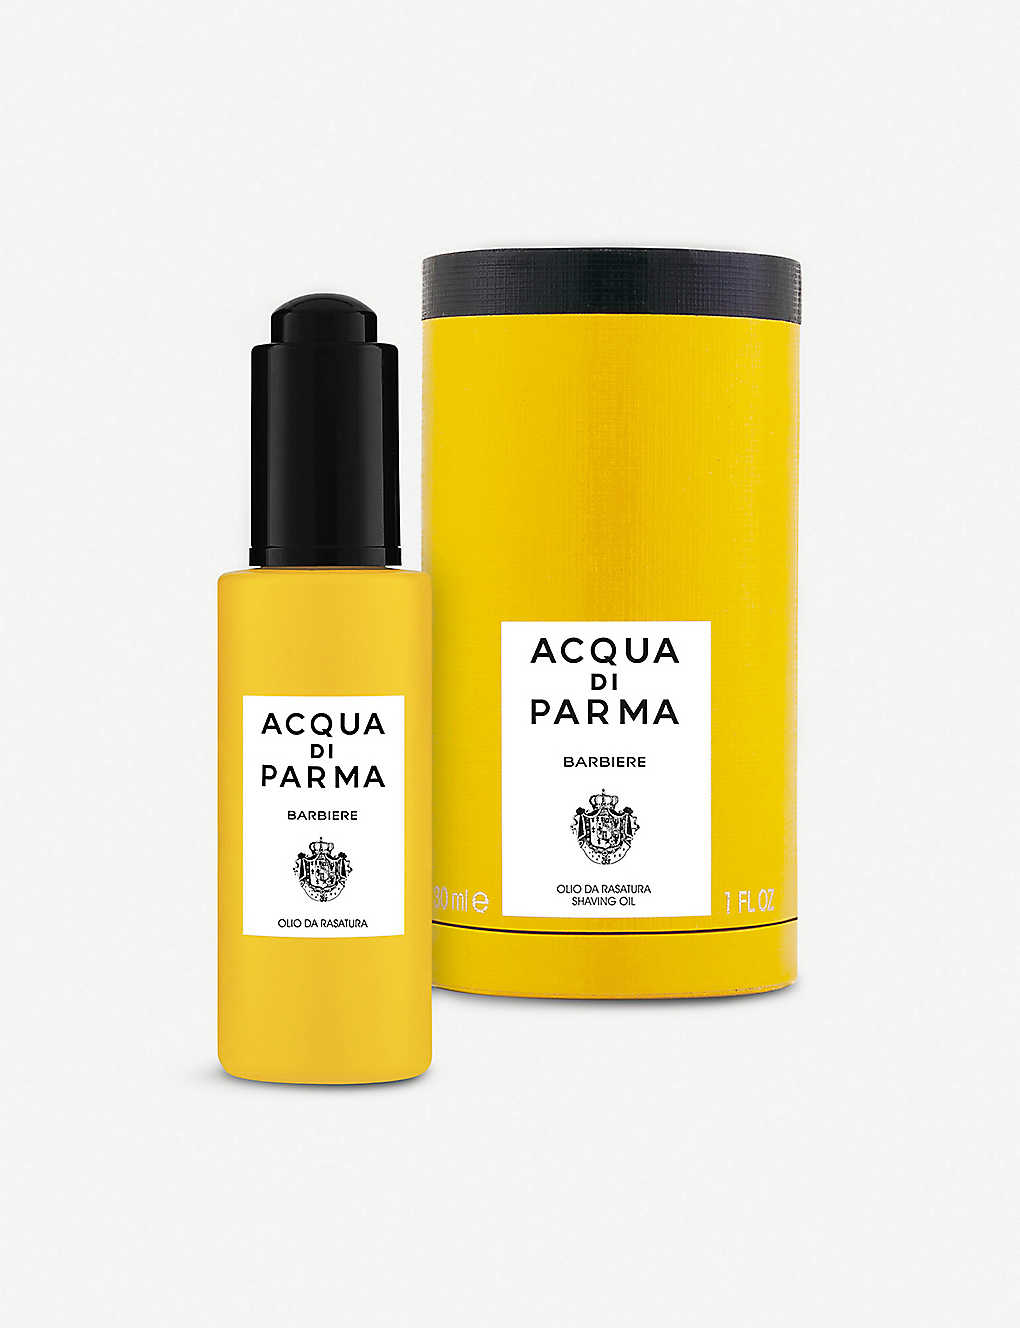 ACQUA DI PARMA: Barbiere shaving oil 30ml